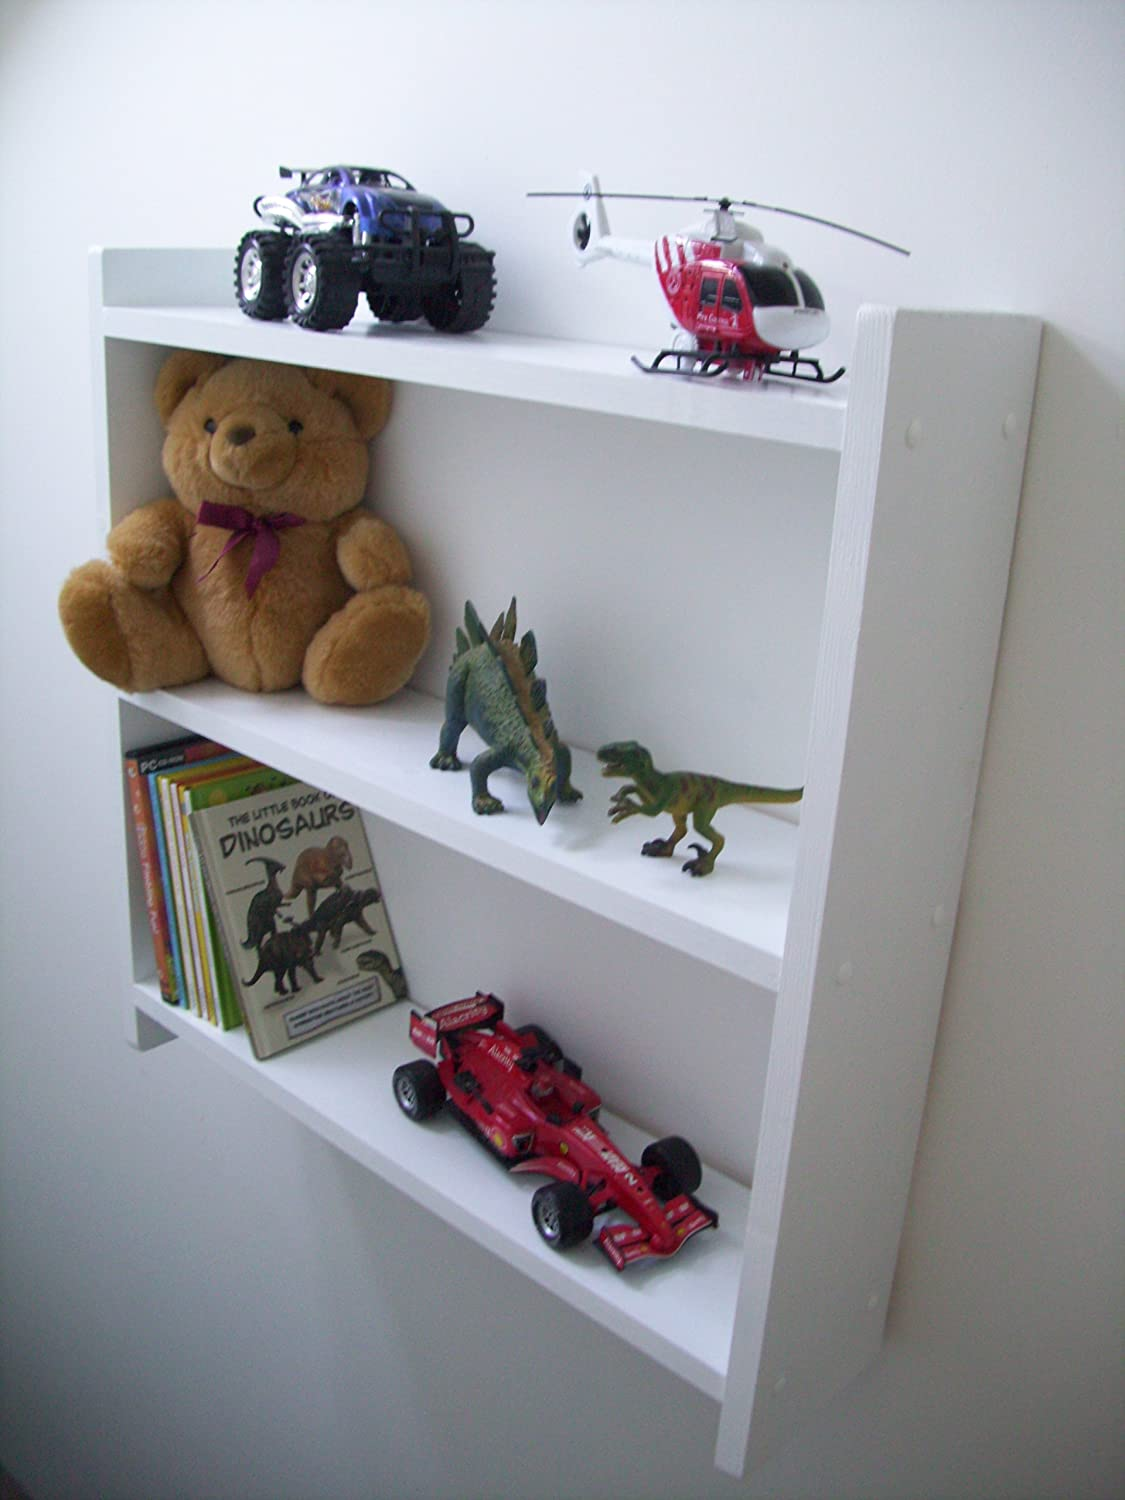 Shelves Childrens Bedroom 60cm Royal Blue Shelving Kids Bedroom Shelf Boys Bedroom Shelves